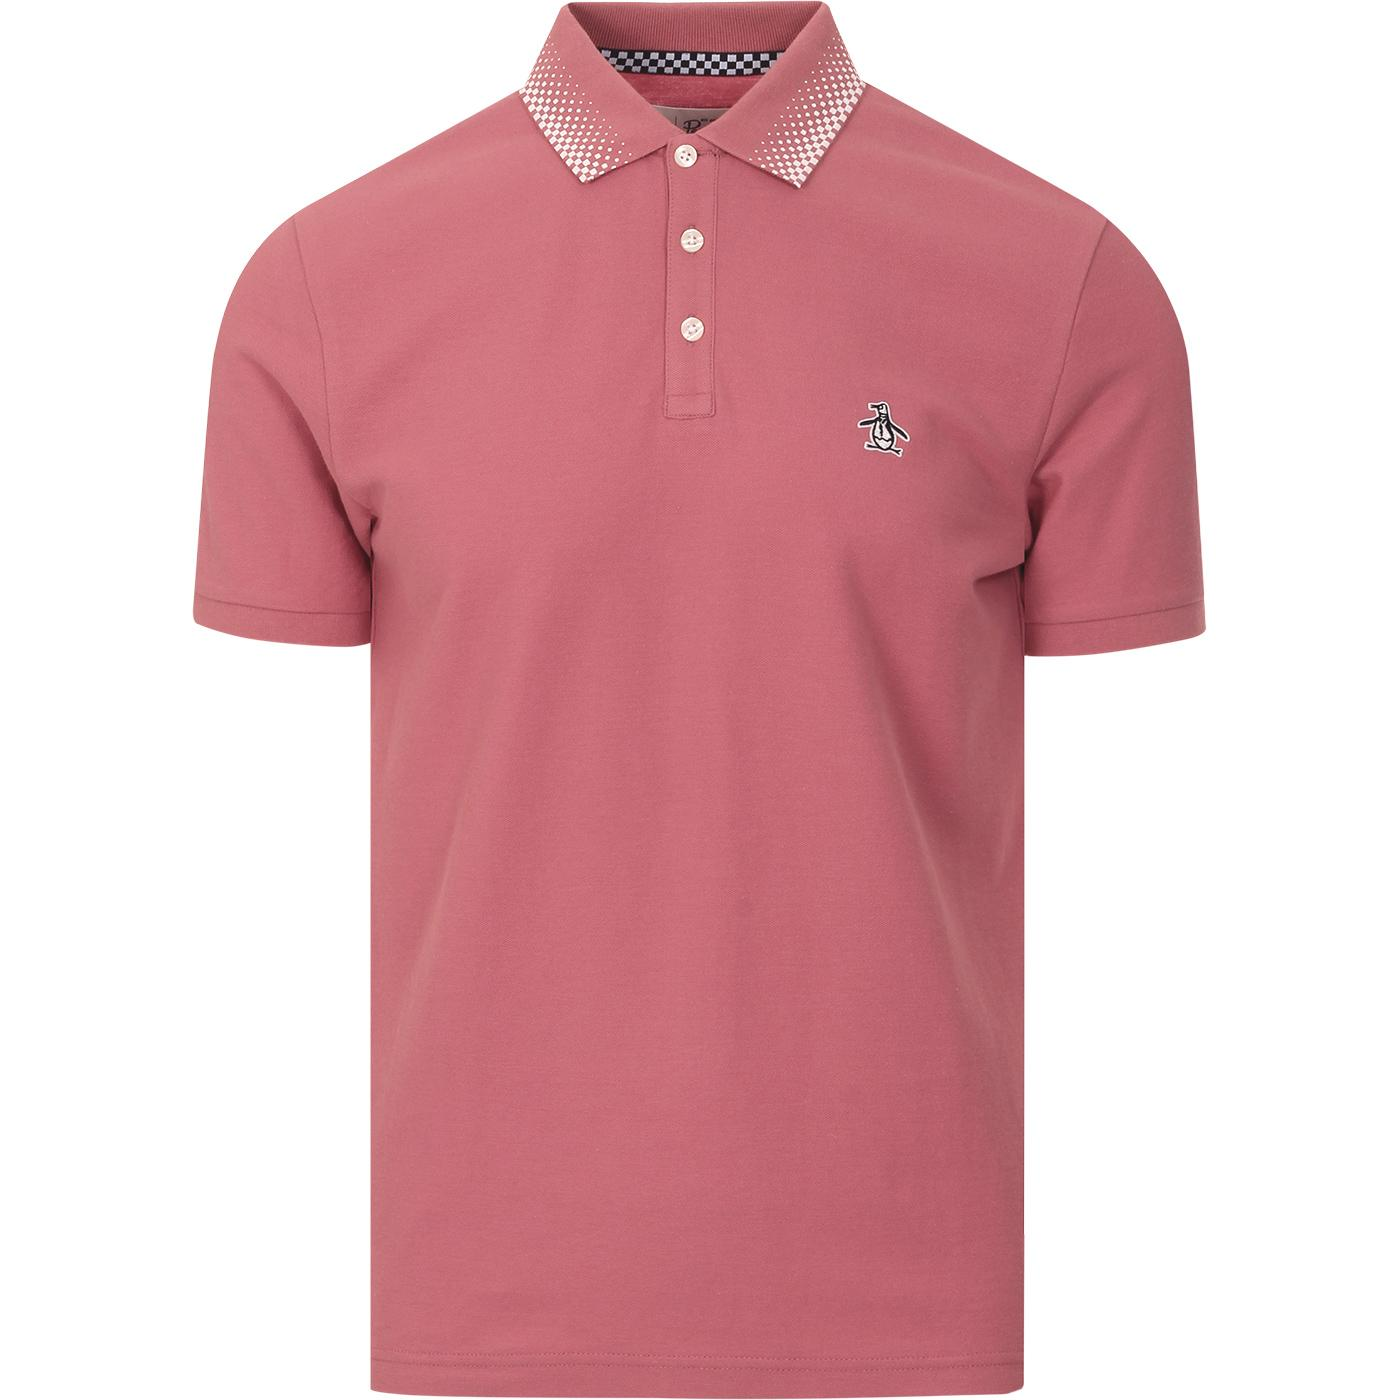 ORIGINAL PENGUIN Mod Checker Tipped Polo Top (DR)